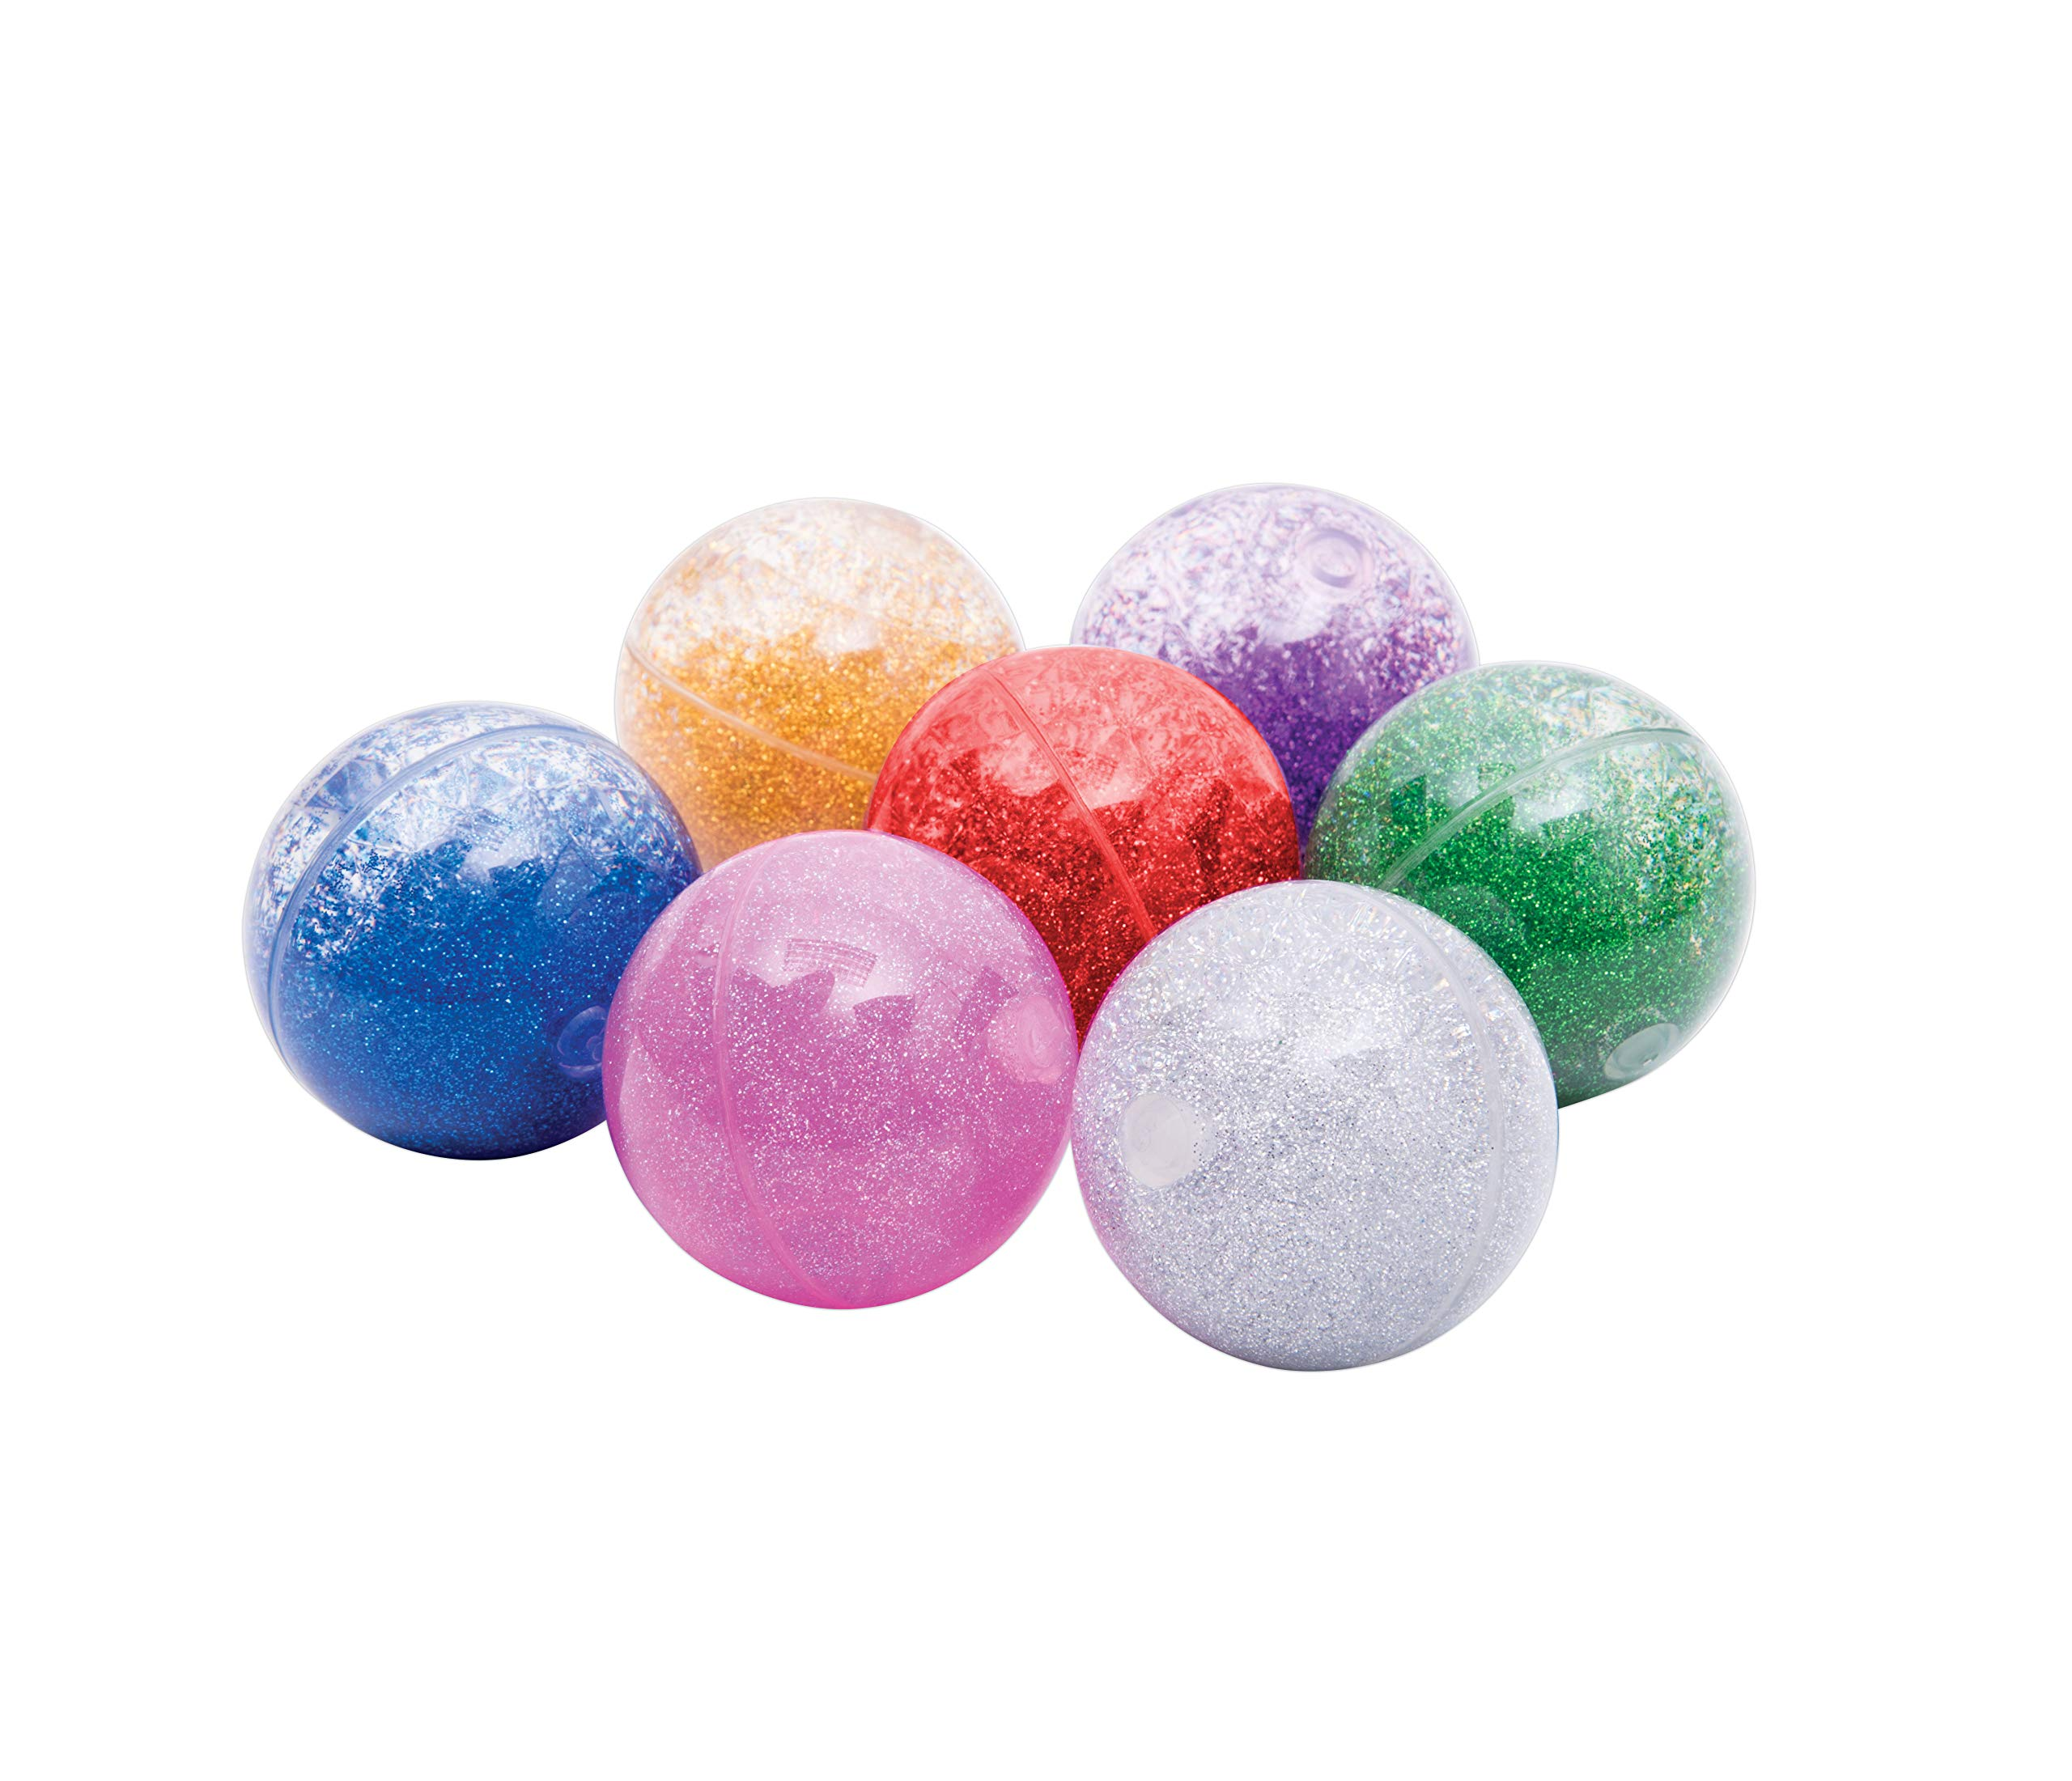 """TickiT Sensory Rainbow Glitter Balls - Set of 7-2.6"""" Diameter - Water and Glitter-Filled Bouncy Balls - Assorted Colors - Sensory Play for Toddlers and Kids"""